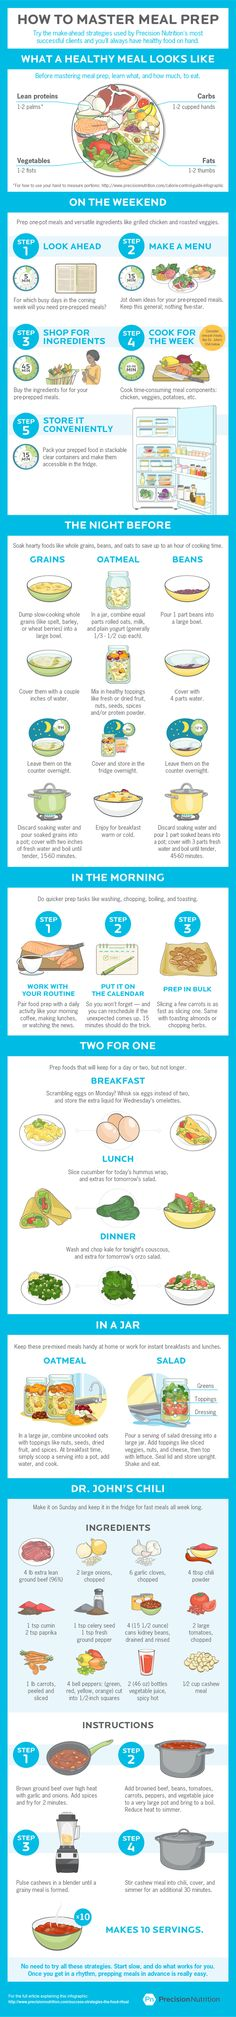 Meal prep in the healthiest, easiest way possible.